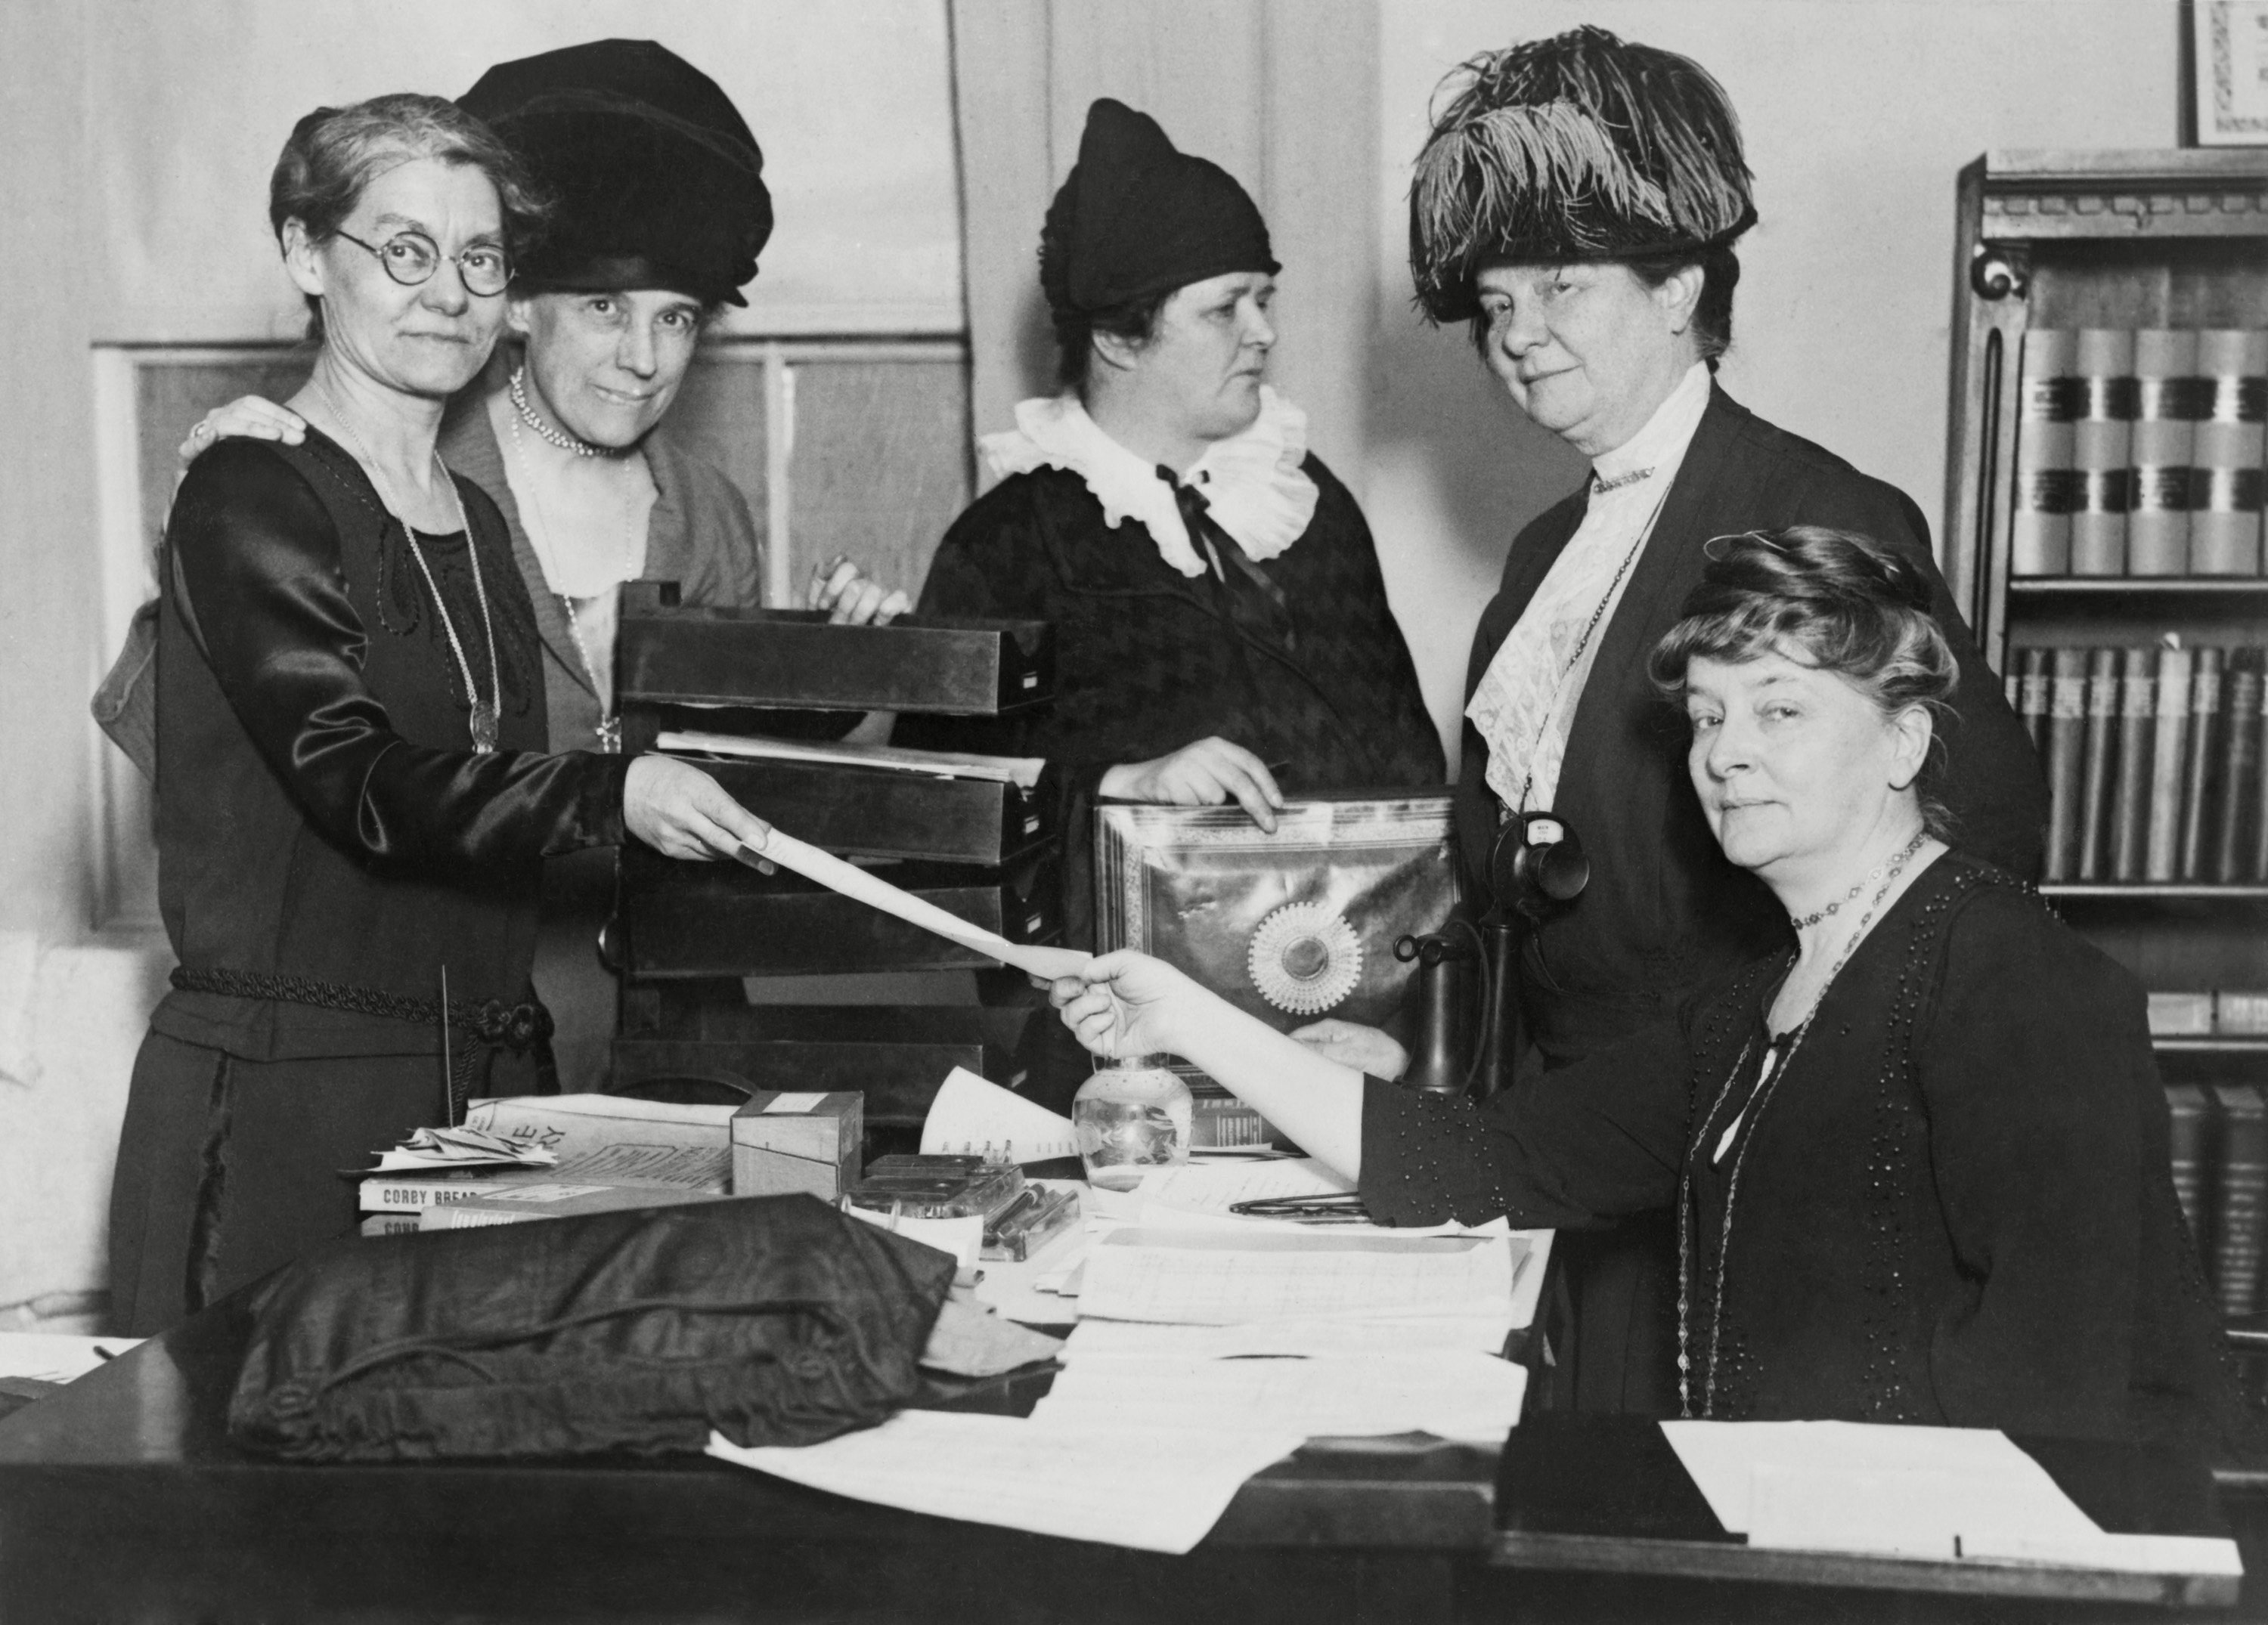 Mandatory Credit: Photo by Everett/Shutterstock (10283001a) Executive committee of the National League of Women Voters in 1924. L-R: Elizabeth Hauser, Katherine Ludington, Ruth Morgan, Belle Sherwin, and Maud Wood Park. Later renamed League of Women Voters, it was founded in 1920 by Carrie Chapman Catt to help newly enfranchised women exercise their responsibilities as voters. Historical Collection